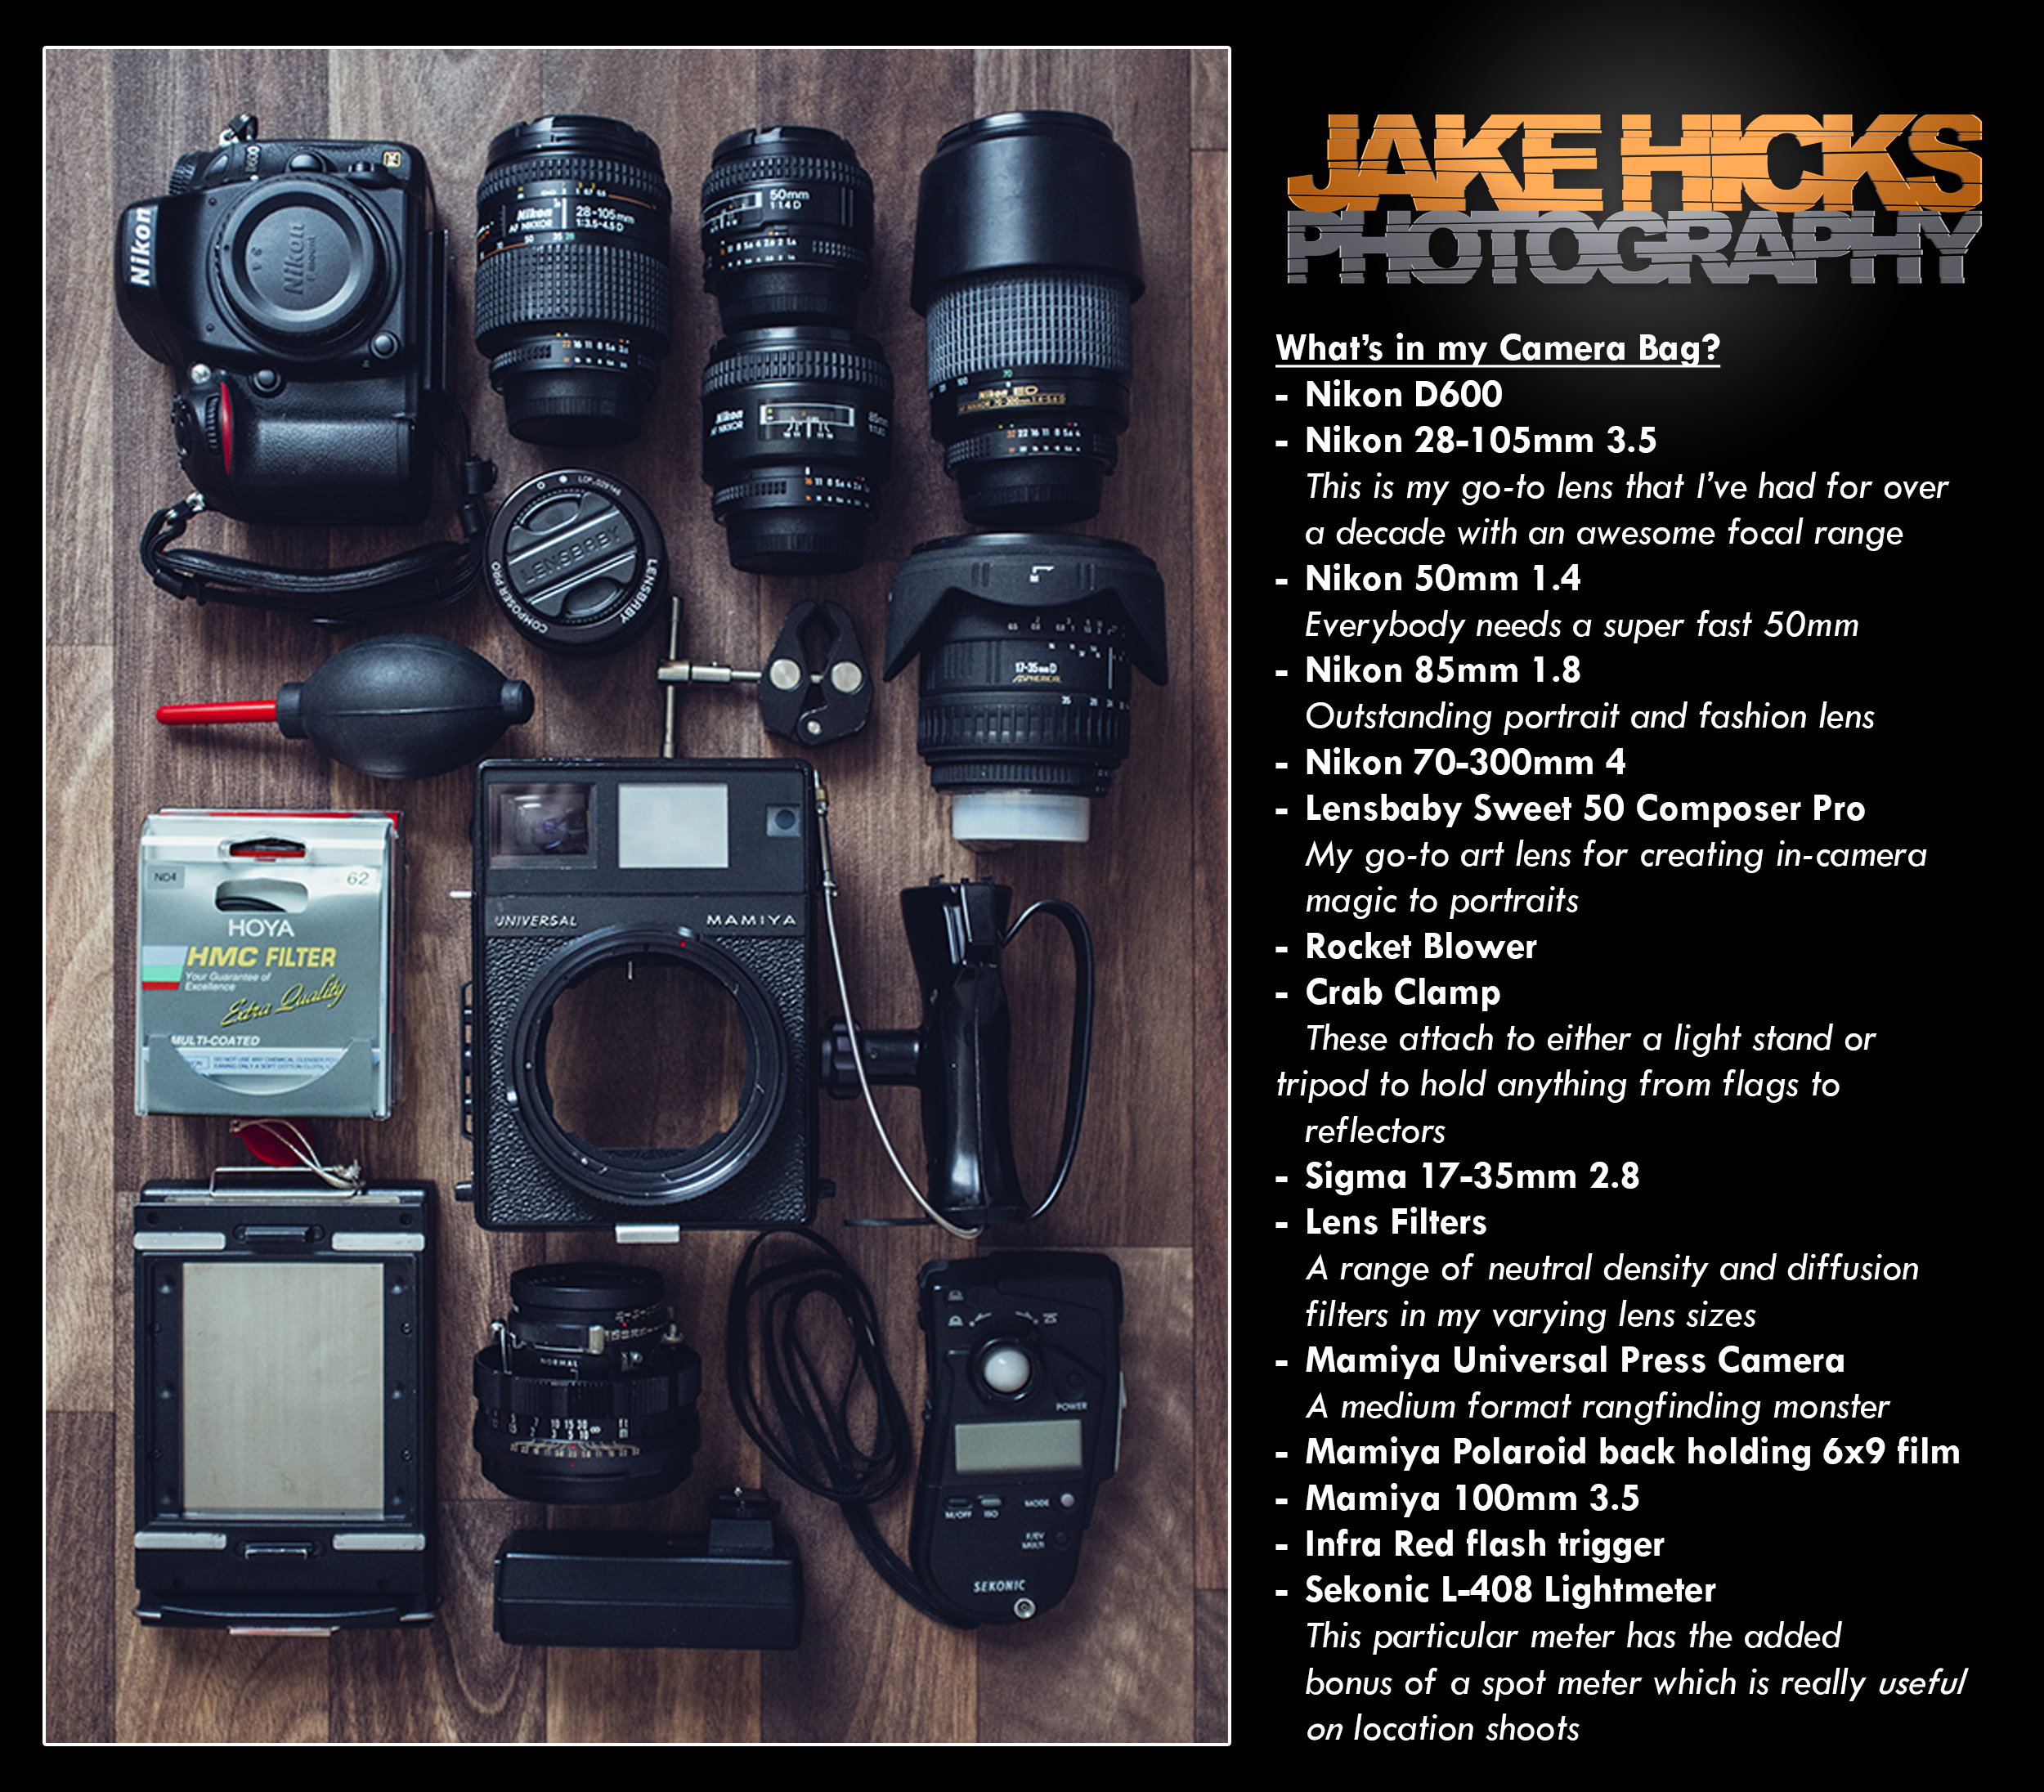 What's In my Camera Bag   I always find it interesting to see what other photographers have in their camera bag so I thought I would return the favour and share what's in mine. I'm certainly not somebody who needs all the latest and greatest gear but what I do have has certainly served me well for many years.